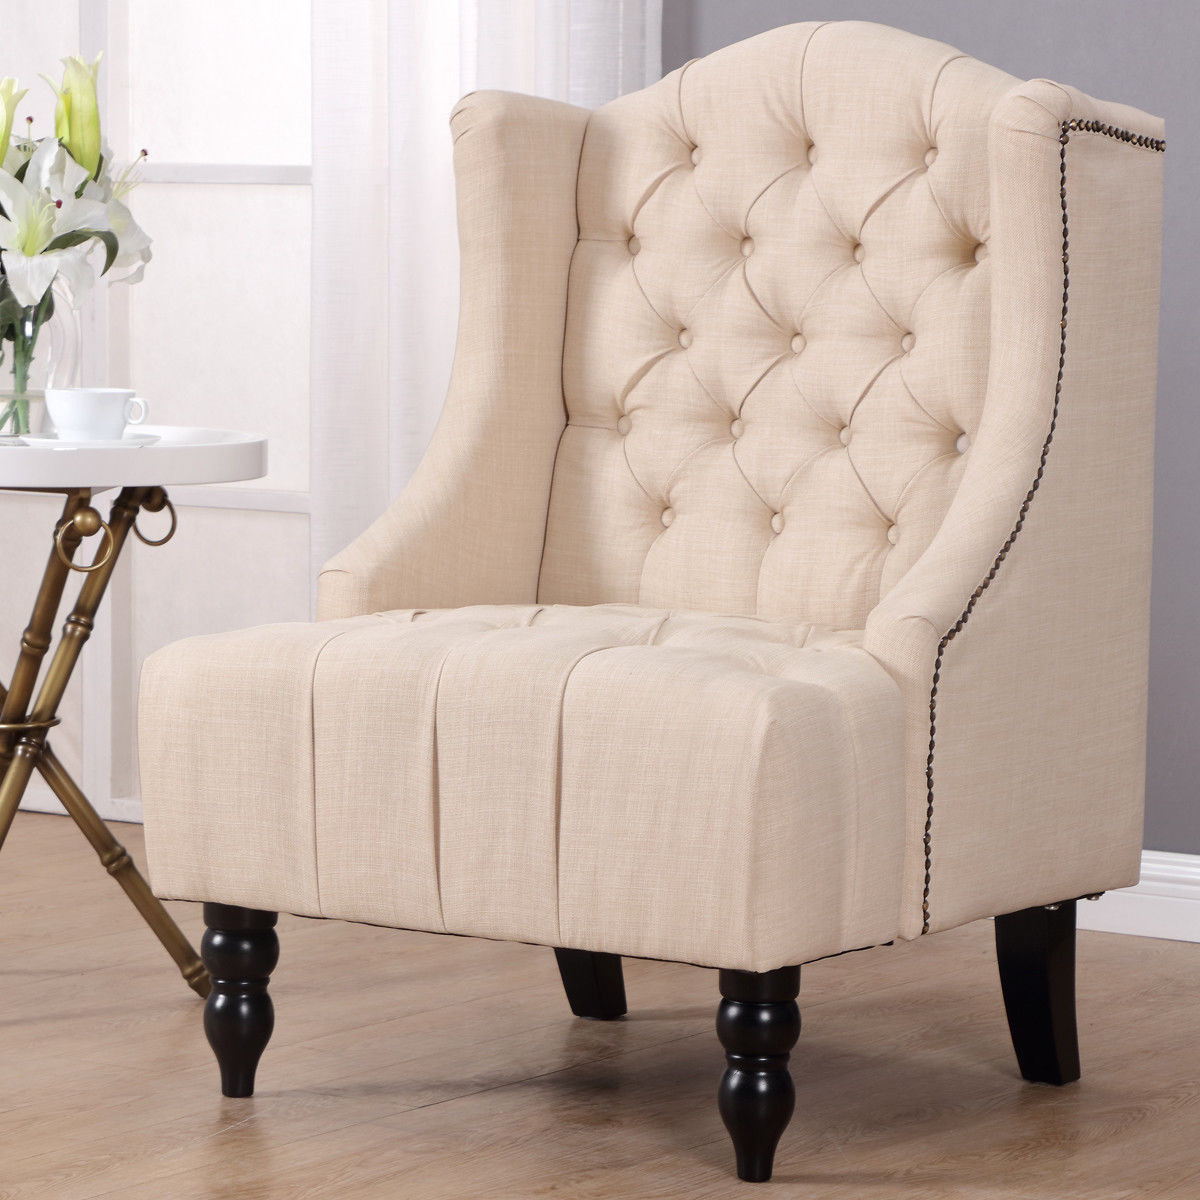 Aweinspiring Giantex Tall Wing Back Tufted Accent Armchair Fabric Vintage Livingroom Sofa Chair Nailhead Beige Giantex Tall Wing Back Tufted Accent Armchair Fabric Vintage